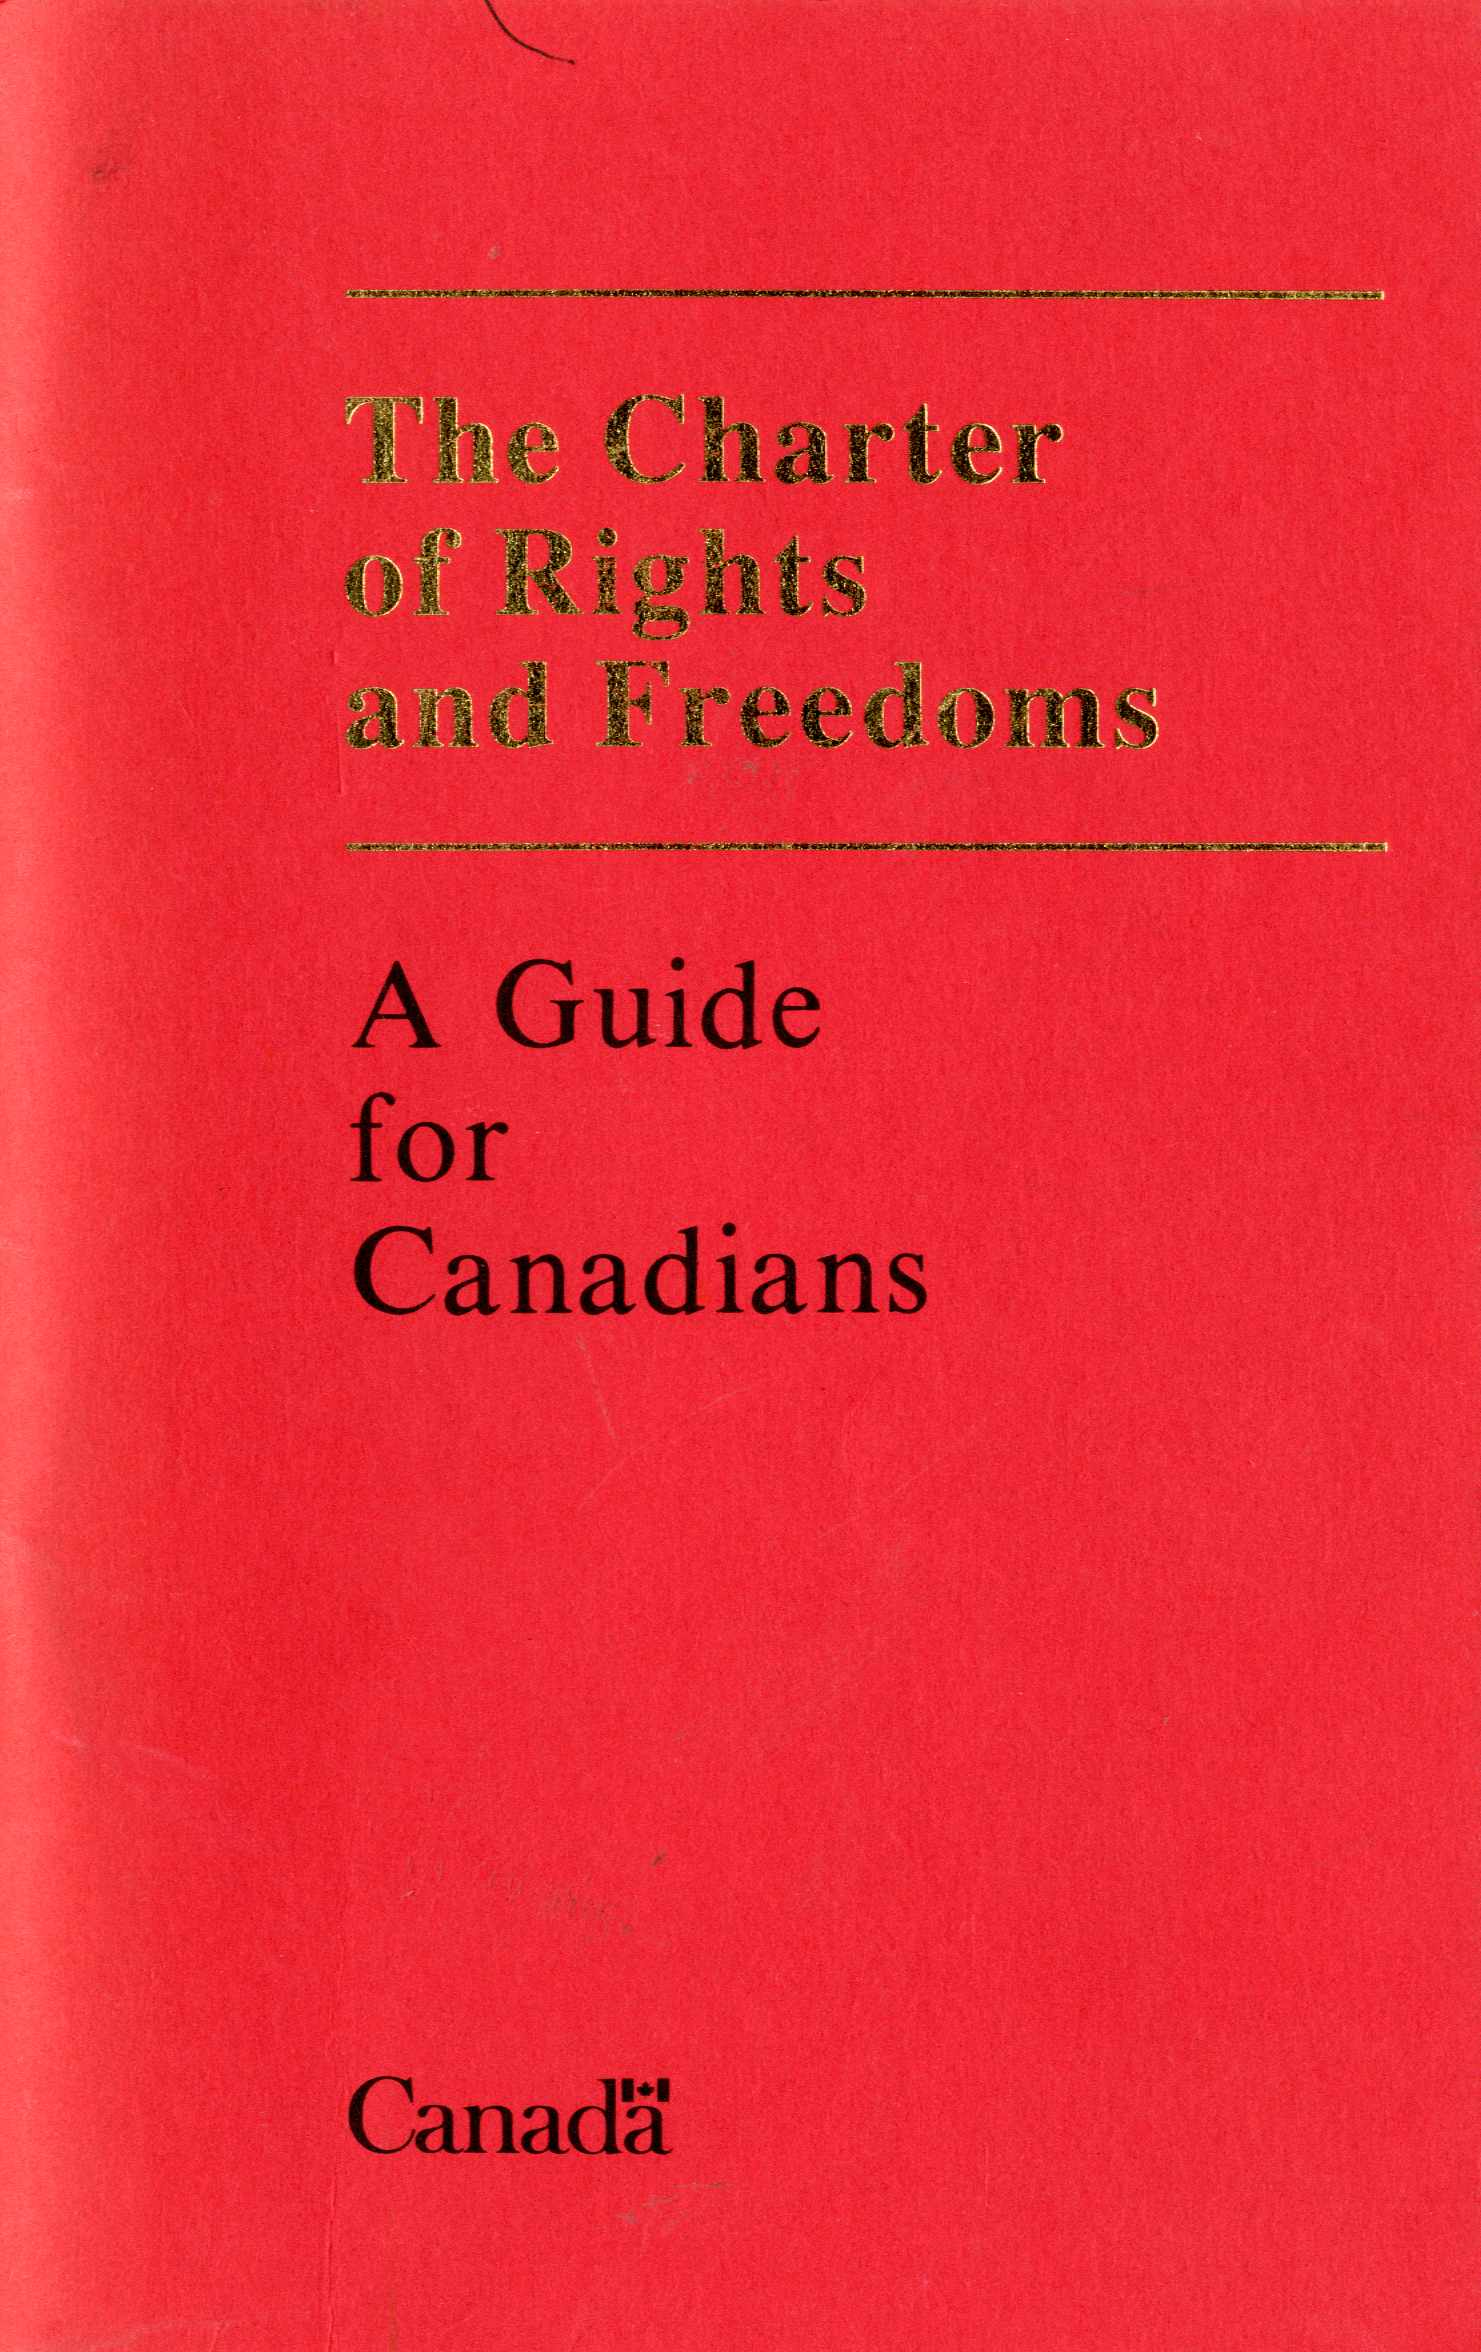 The Charter of Rights and Freedoms: A Guide for Canadians Image